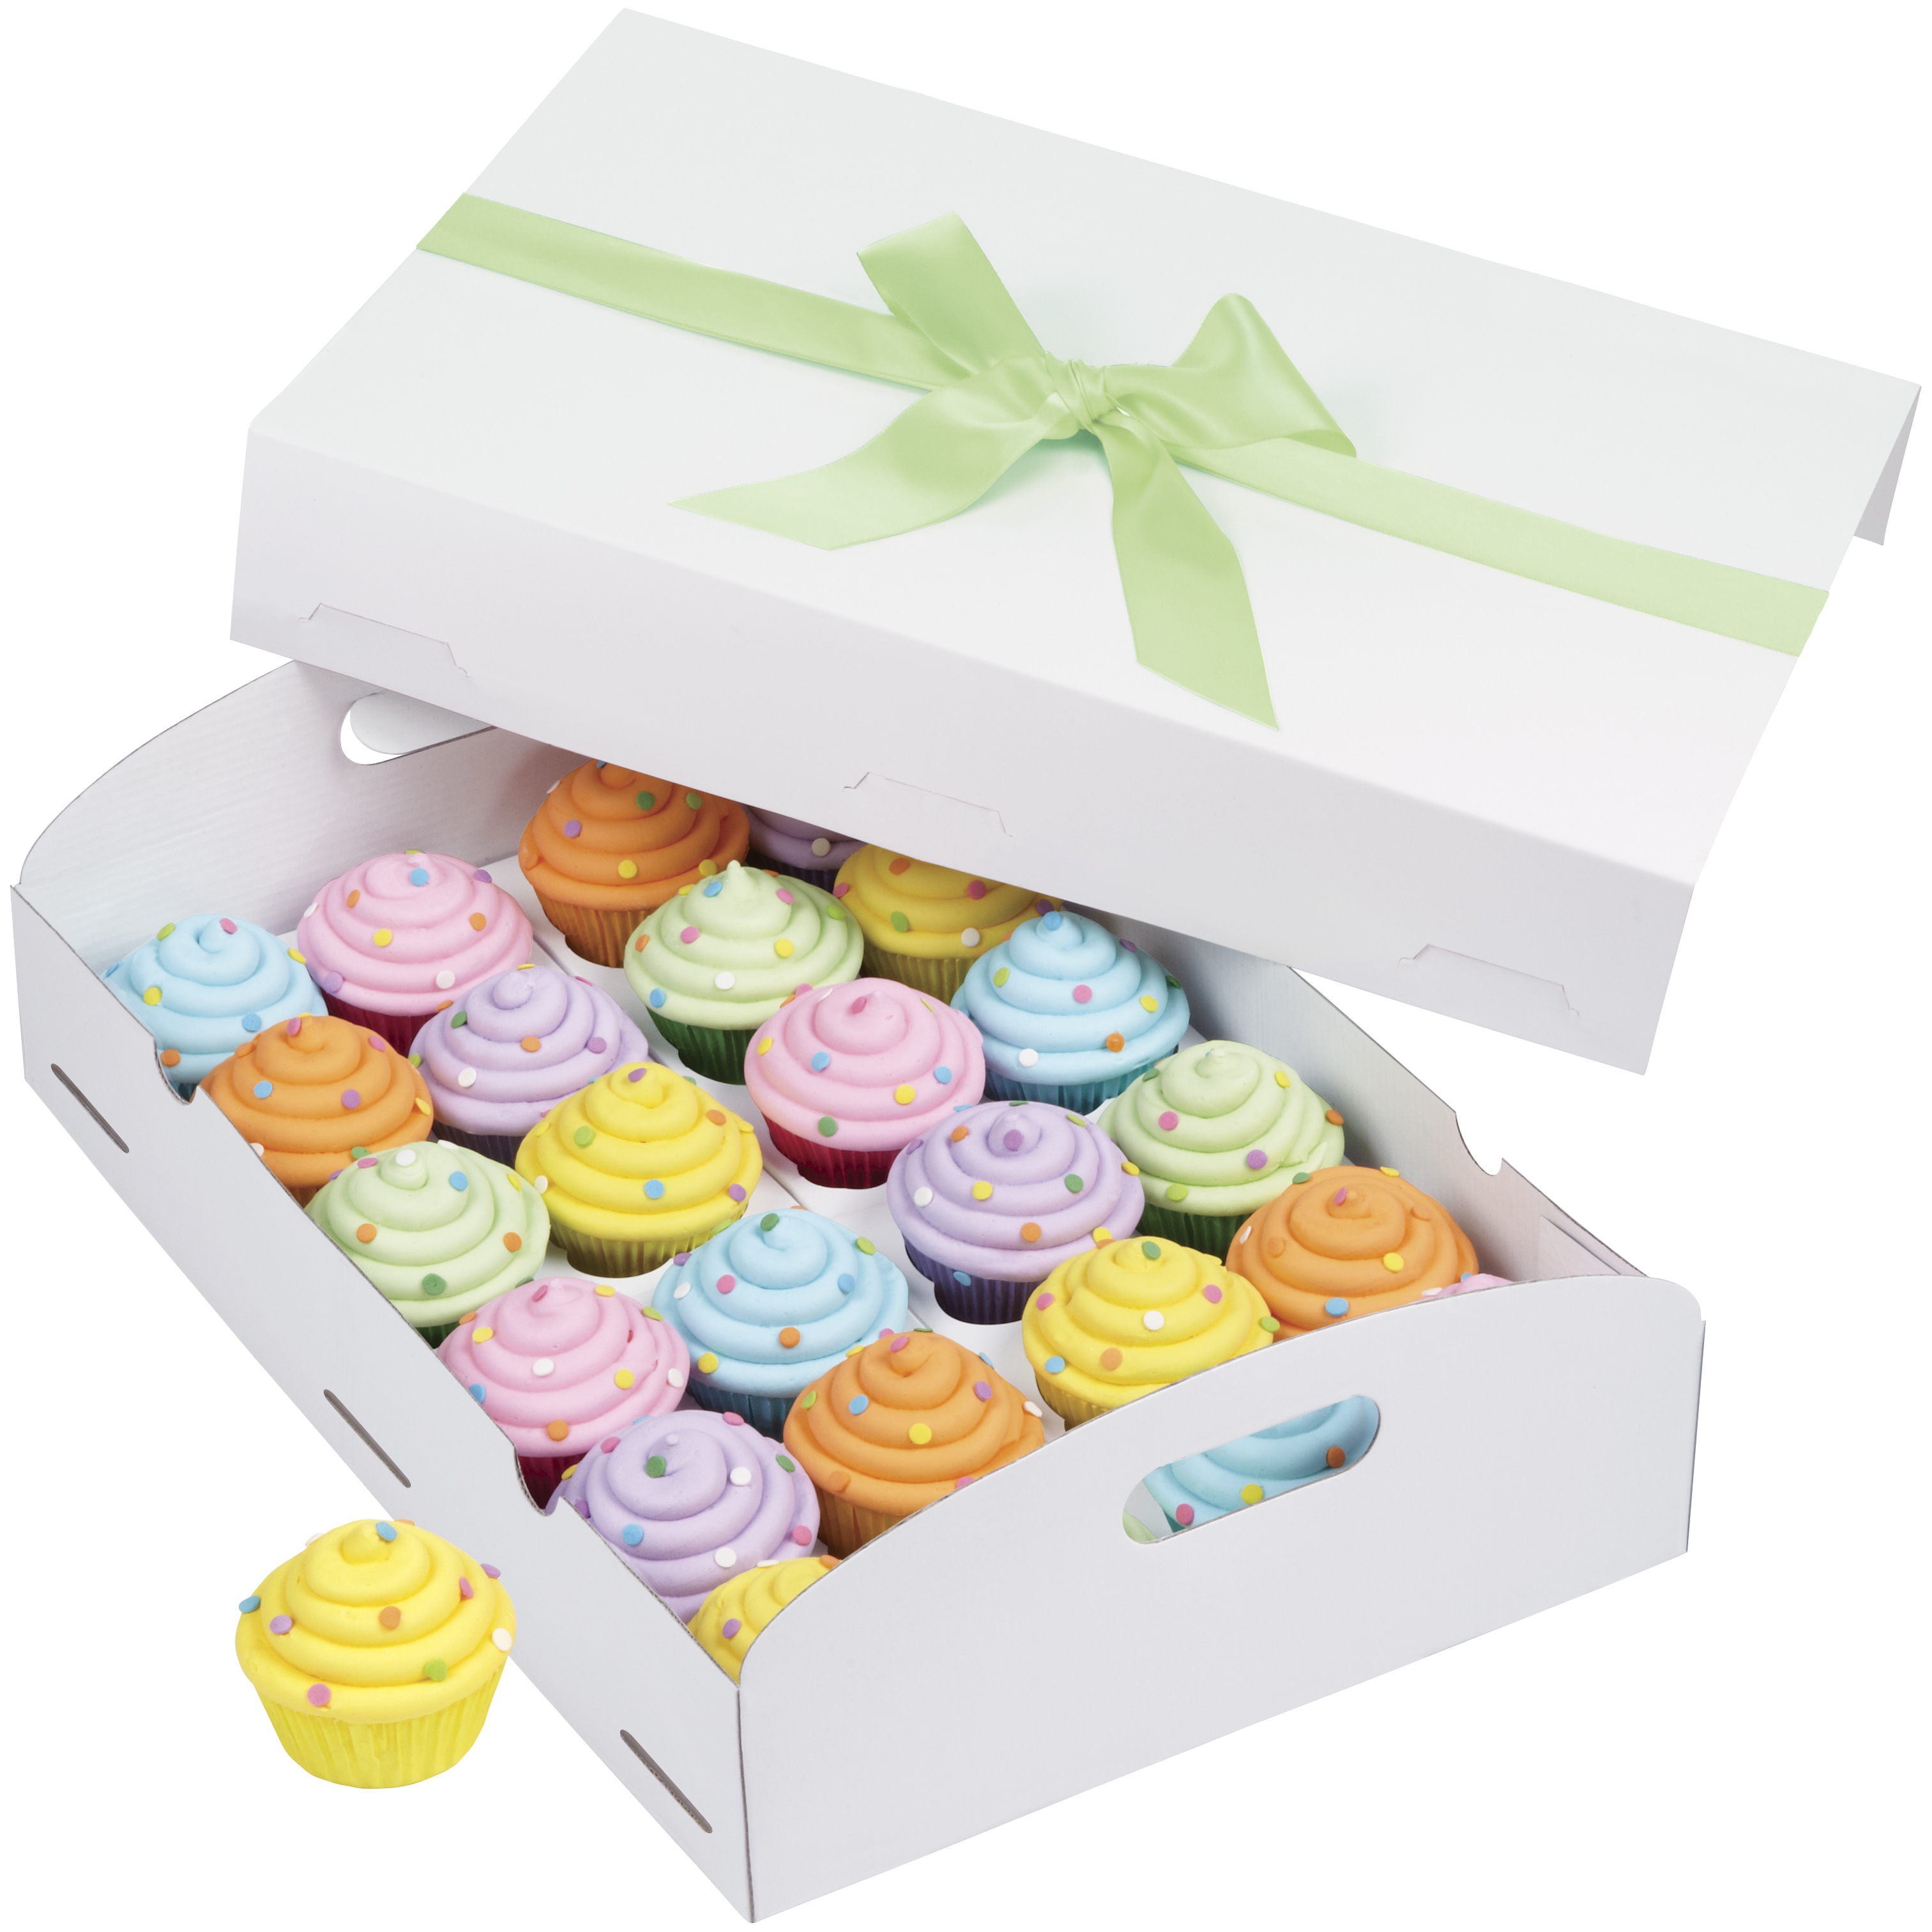 Wilton White Cupcake Carrier Box, 17 x 12x 2 Inch Folding Tray